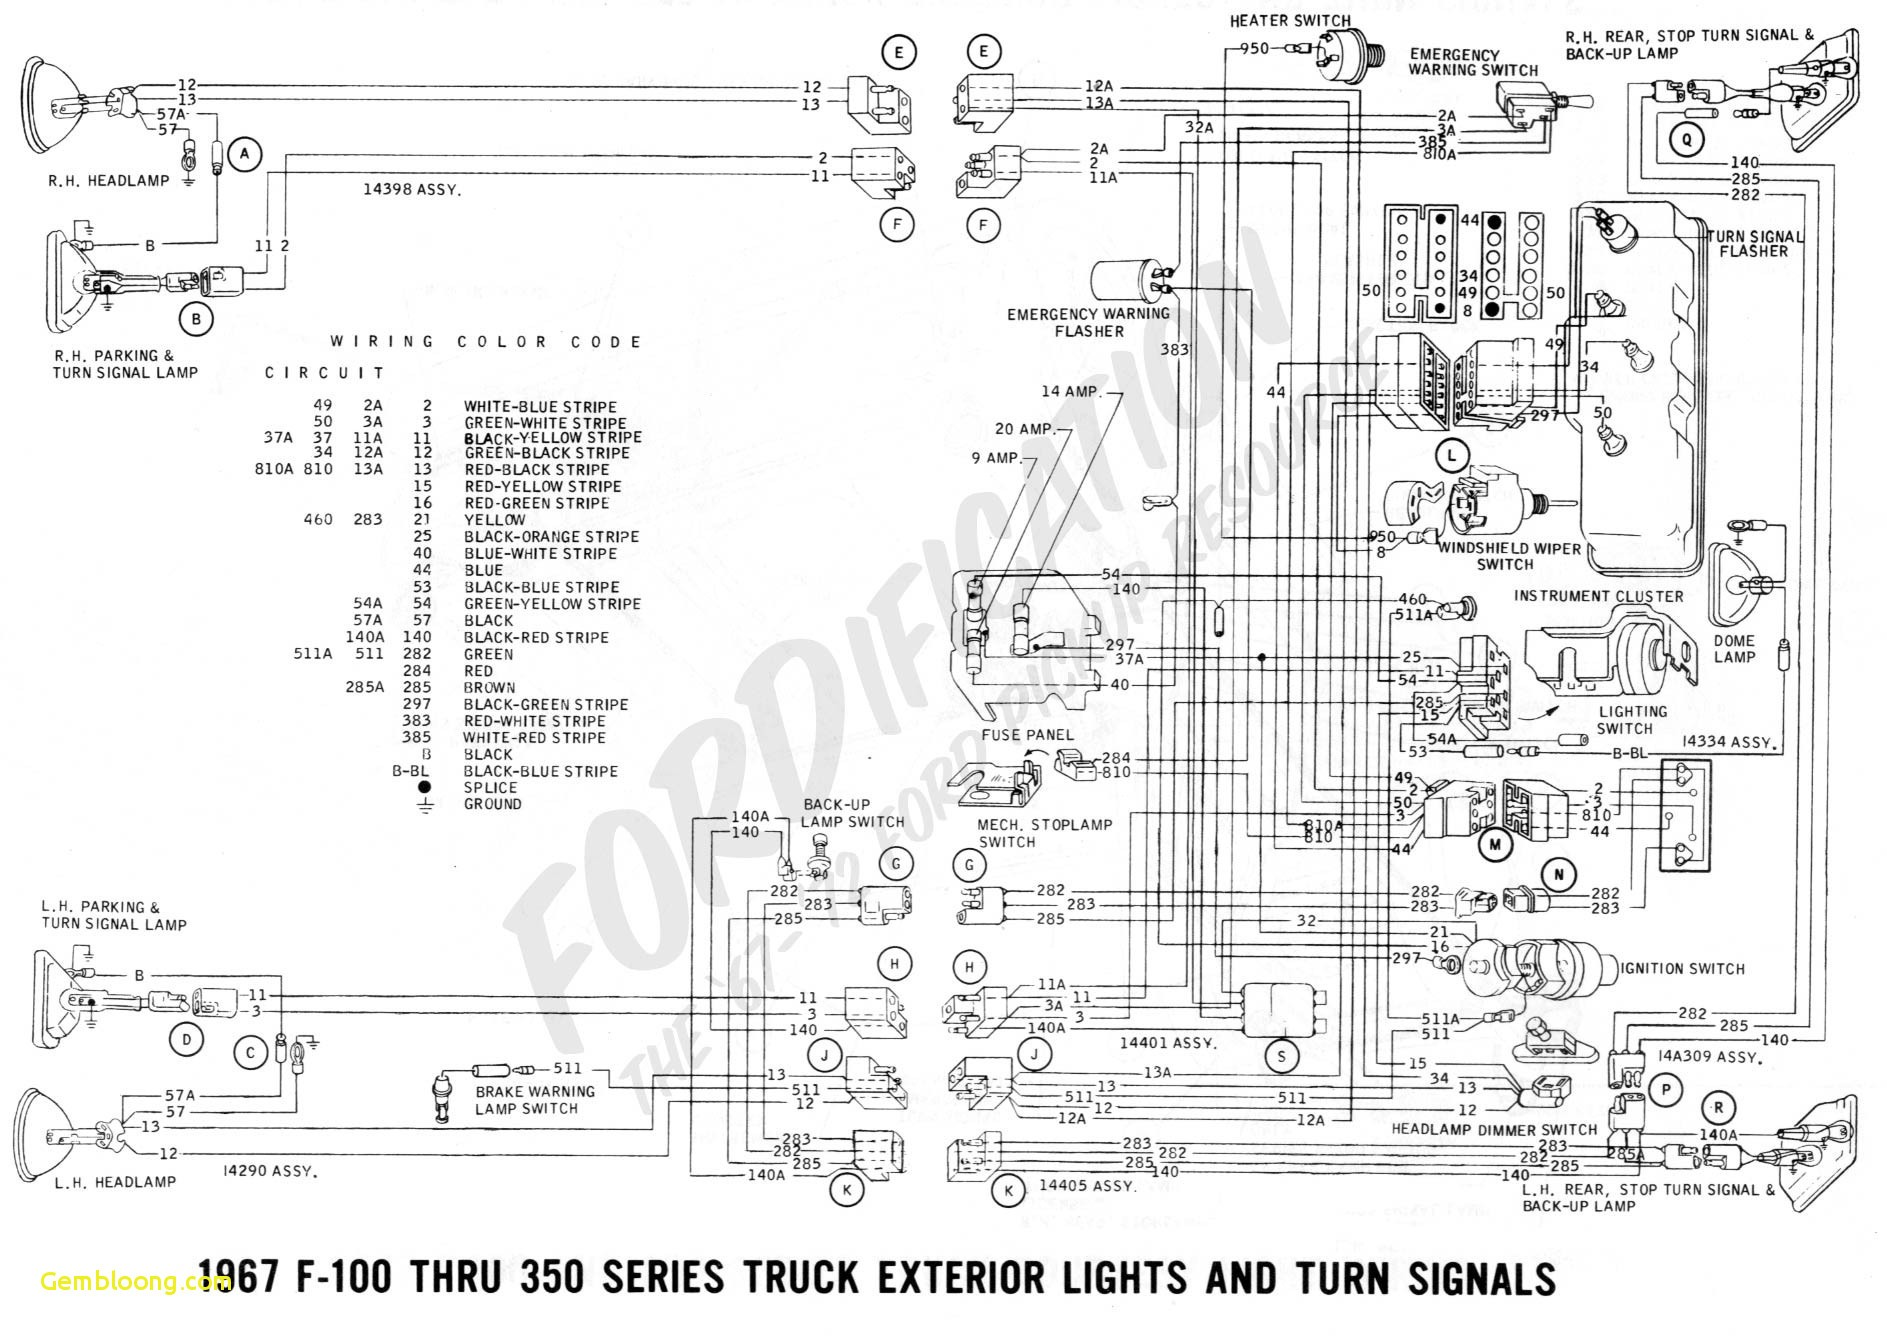 Truck and Trailer Wiring Diagram Download ford Trucks Wiring Diagrams ford F150 Wiring Diagrams Best Of Truck and Trailer Wiring Diagram